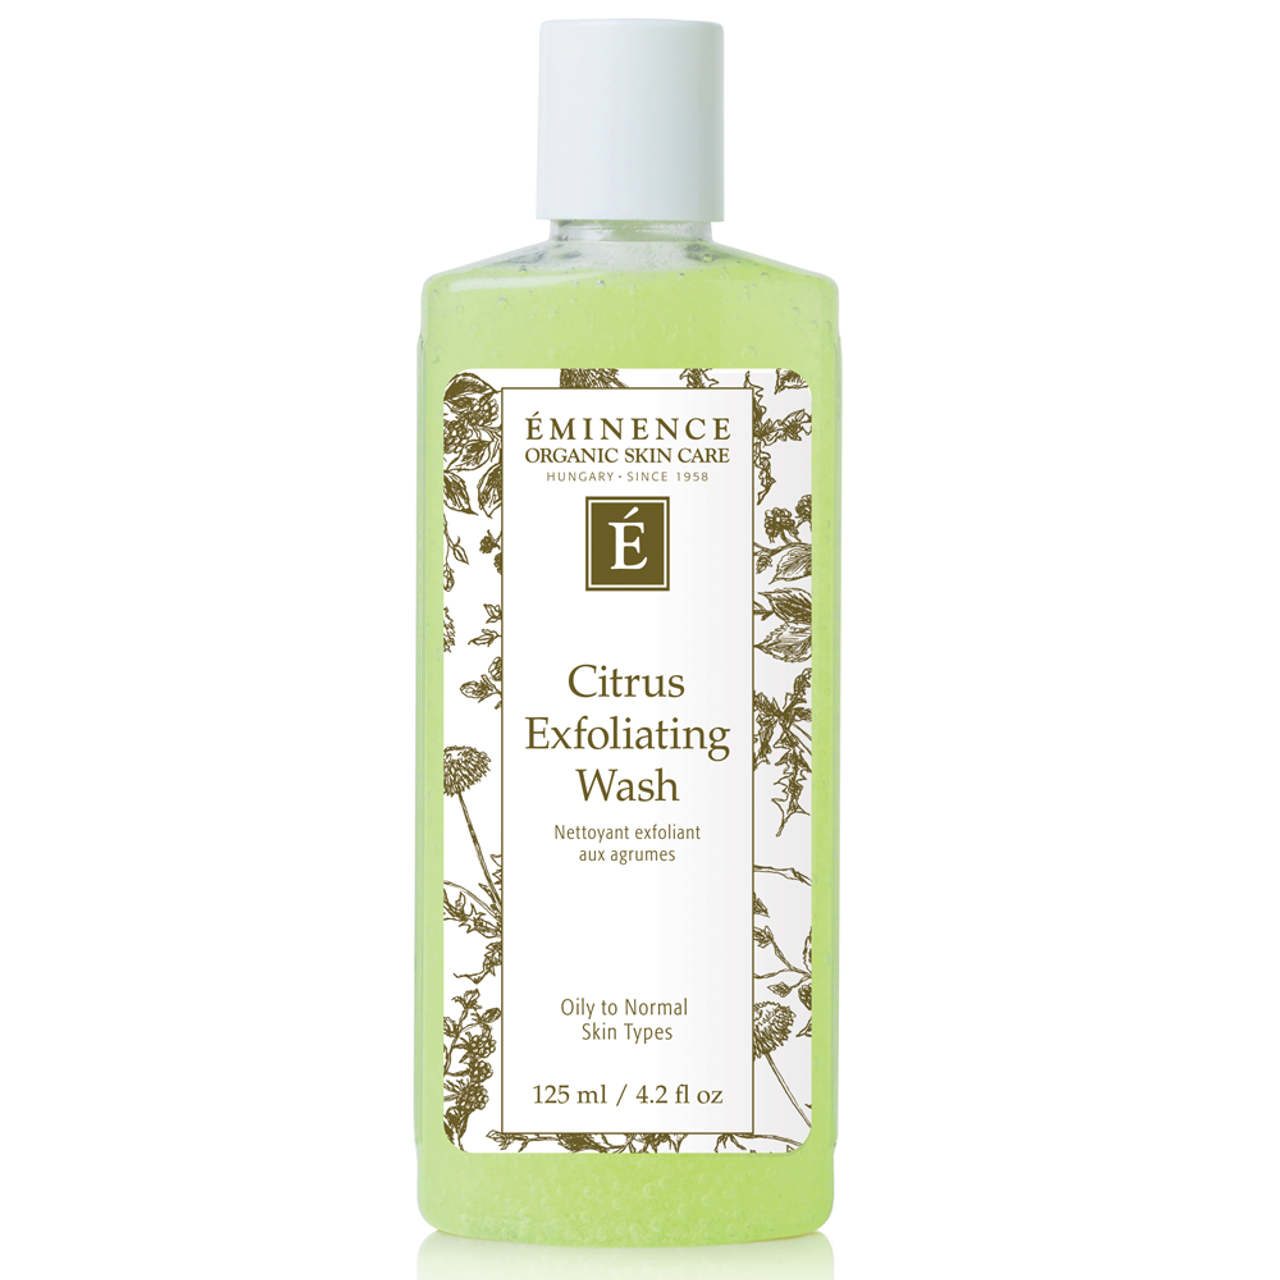 Eminence Citrus Exfoliating Wash